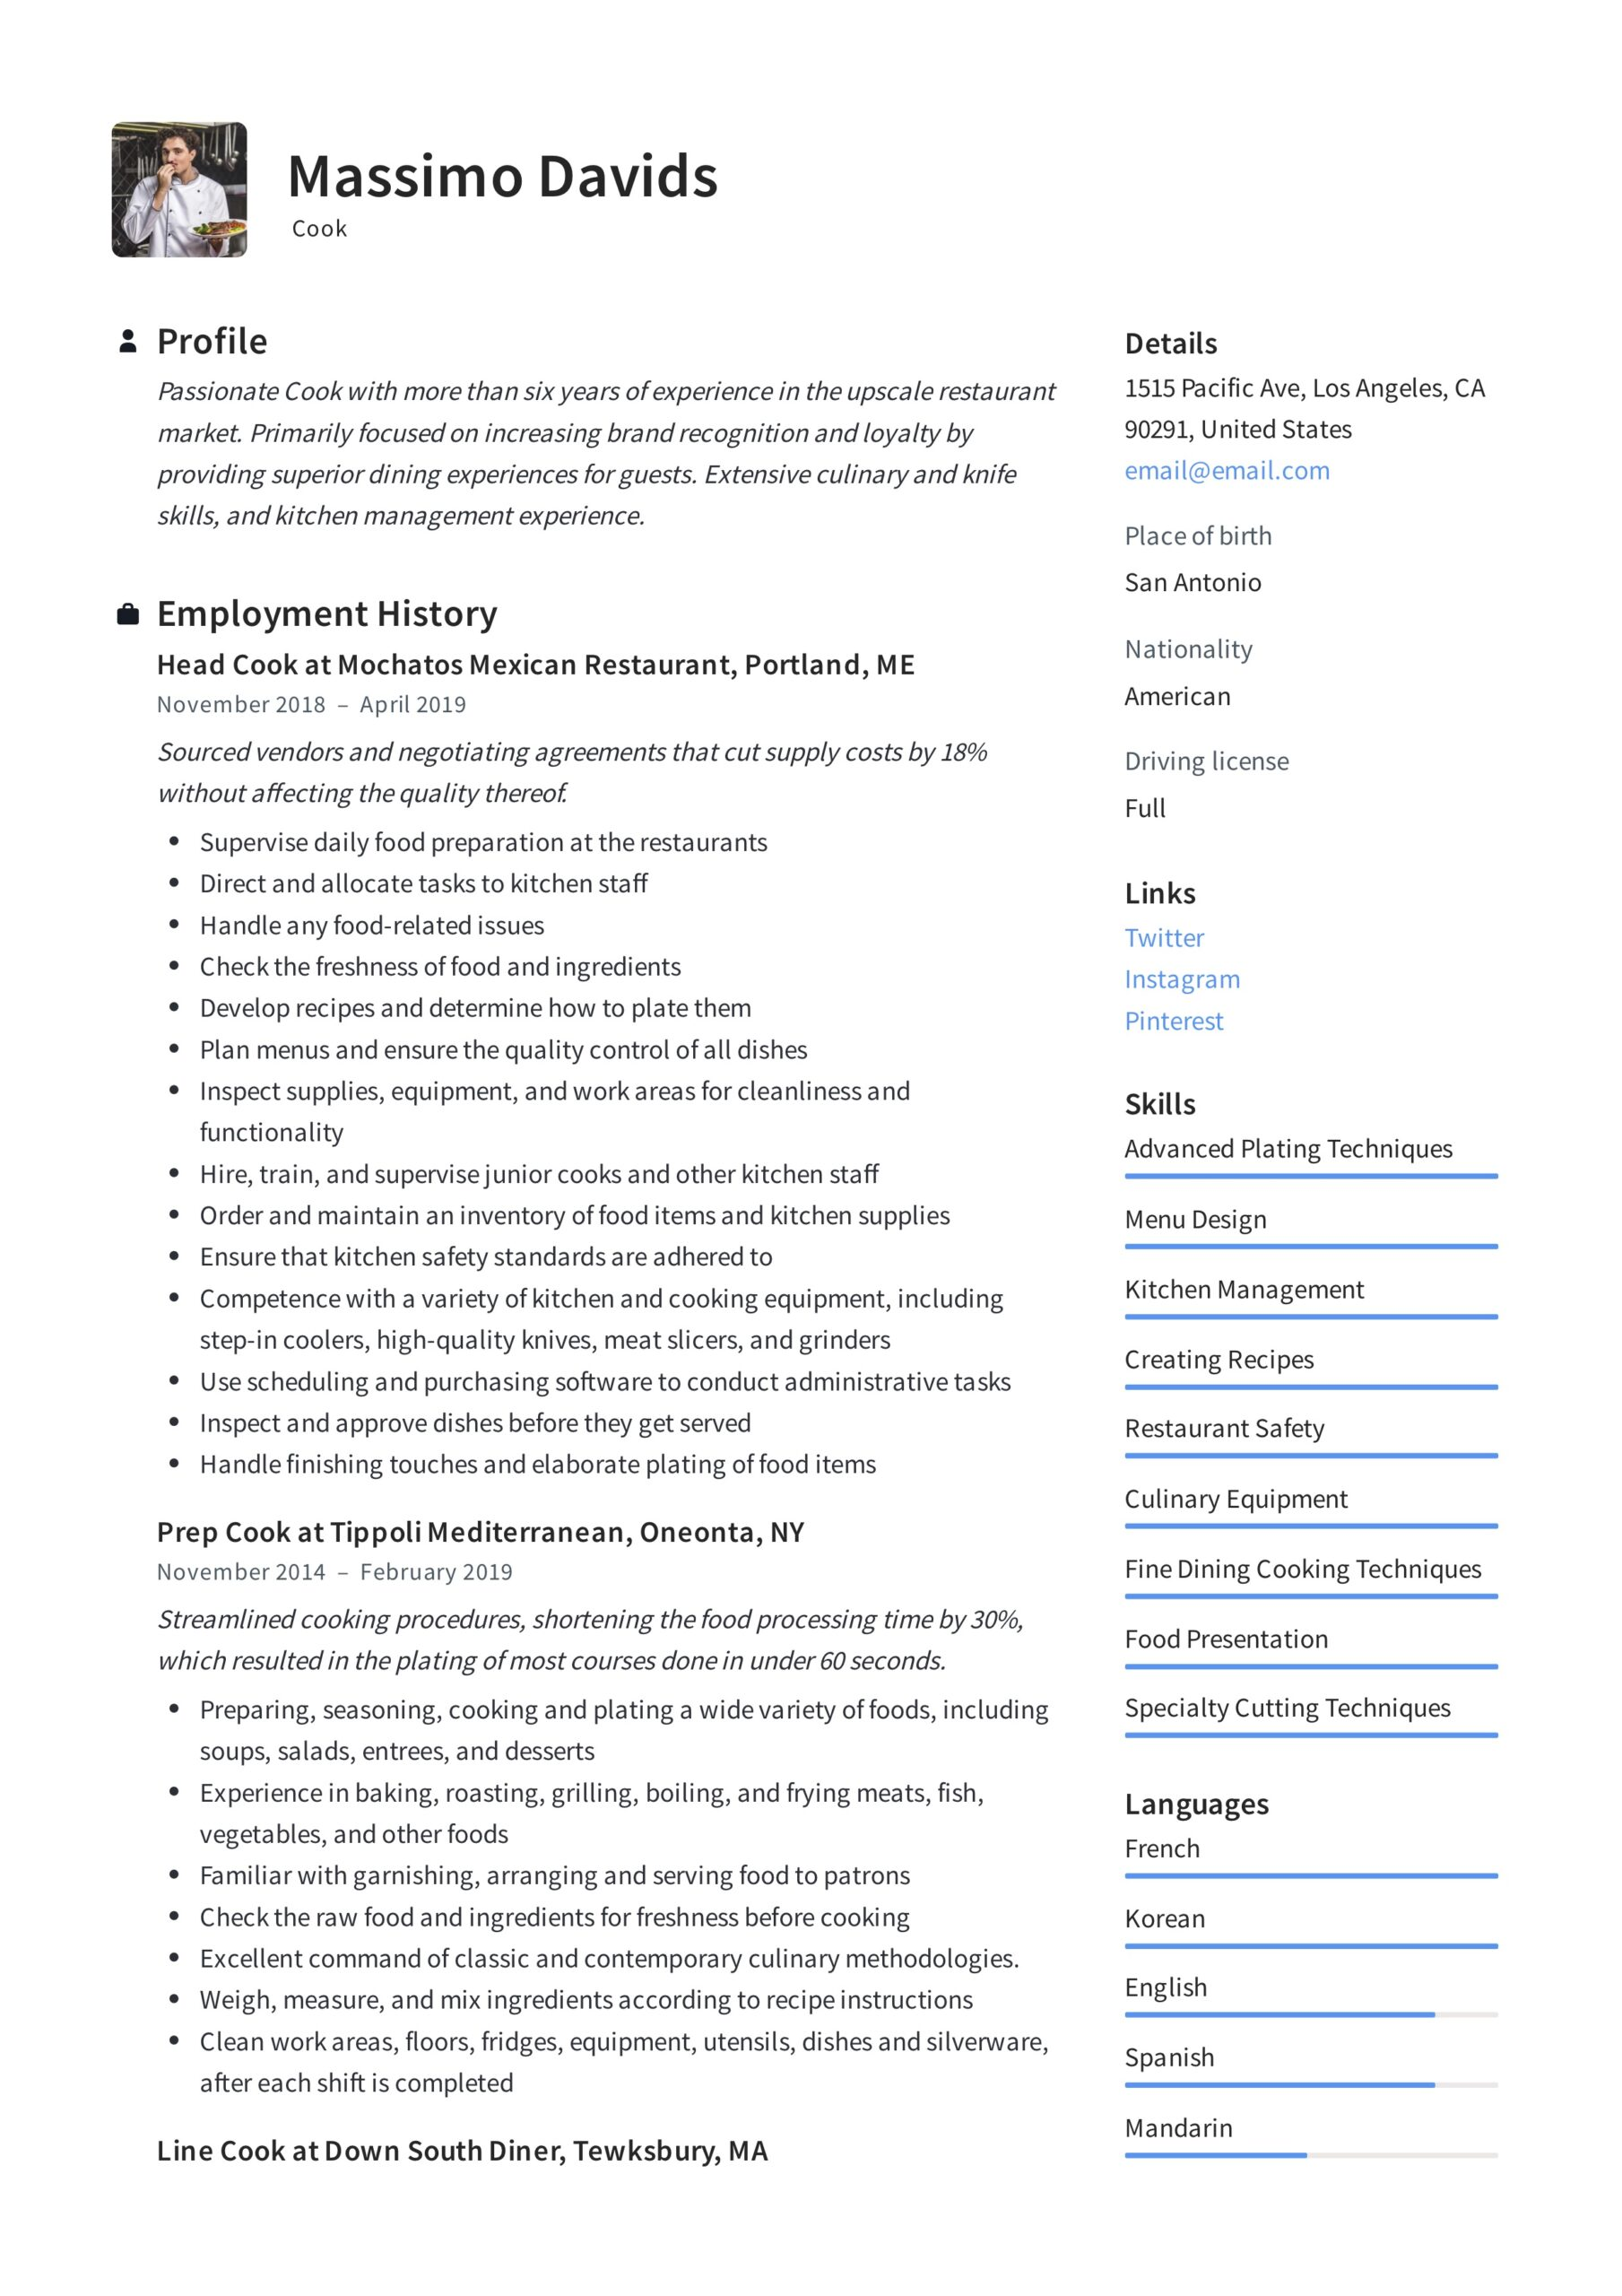 resume writing guide templates prep job description for massimo davids killer social work Resume Prep Cook Job Description For Resume